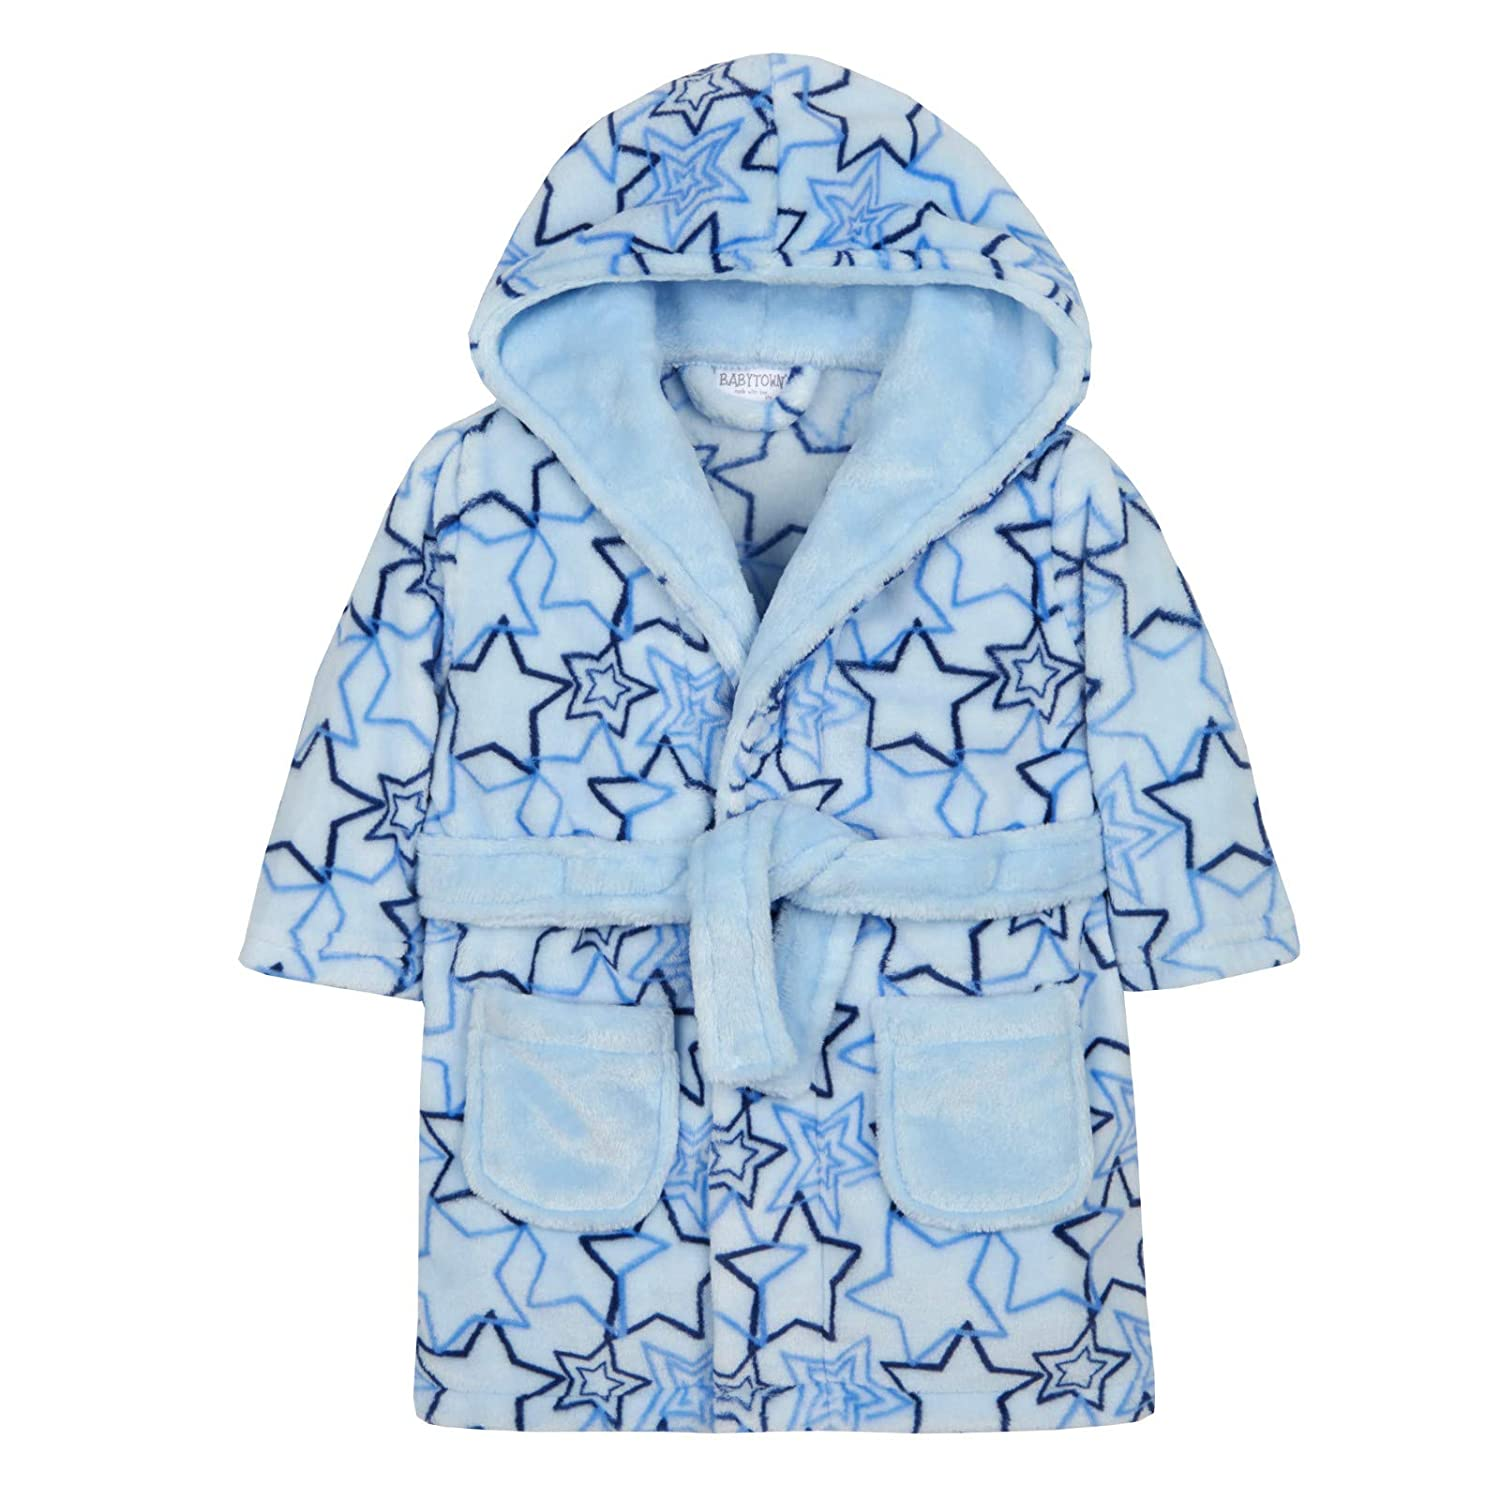 Lora Dora Baby Boys Blue Star Dressing Gown Shoe Directory LB101547